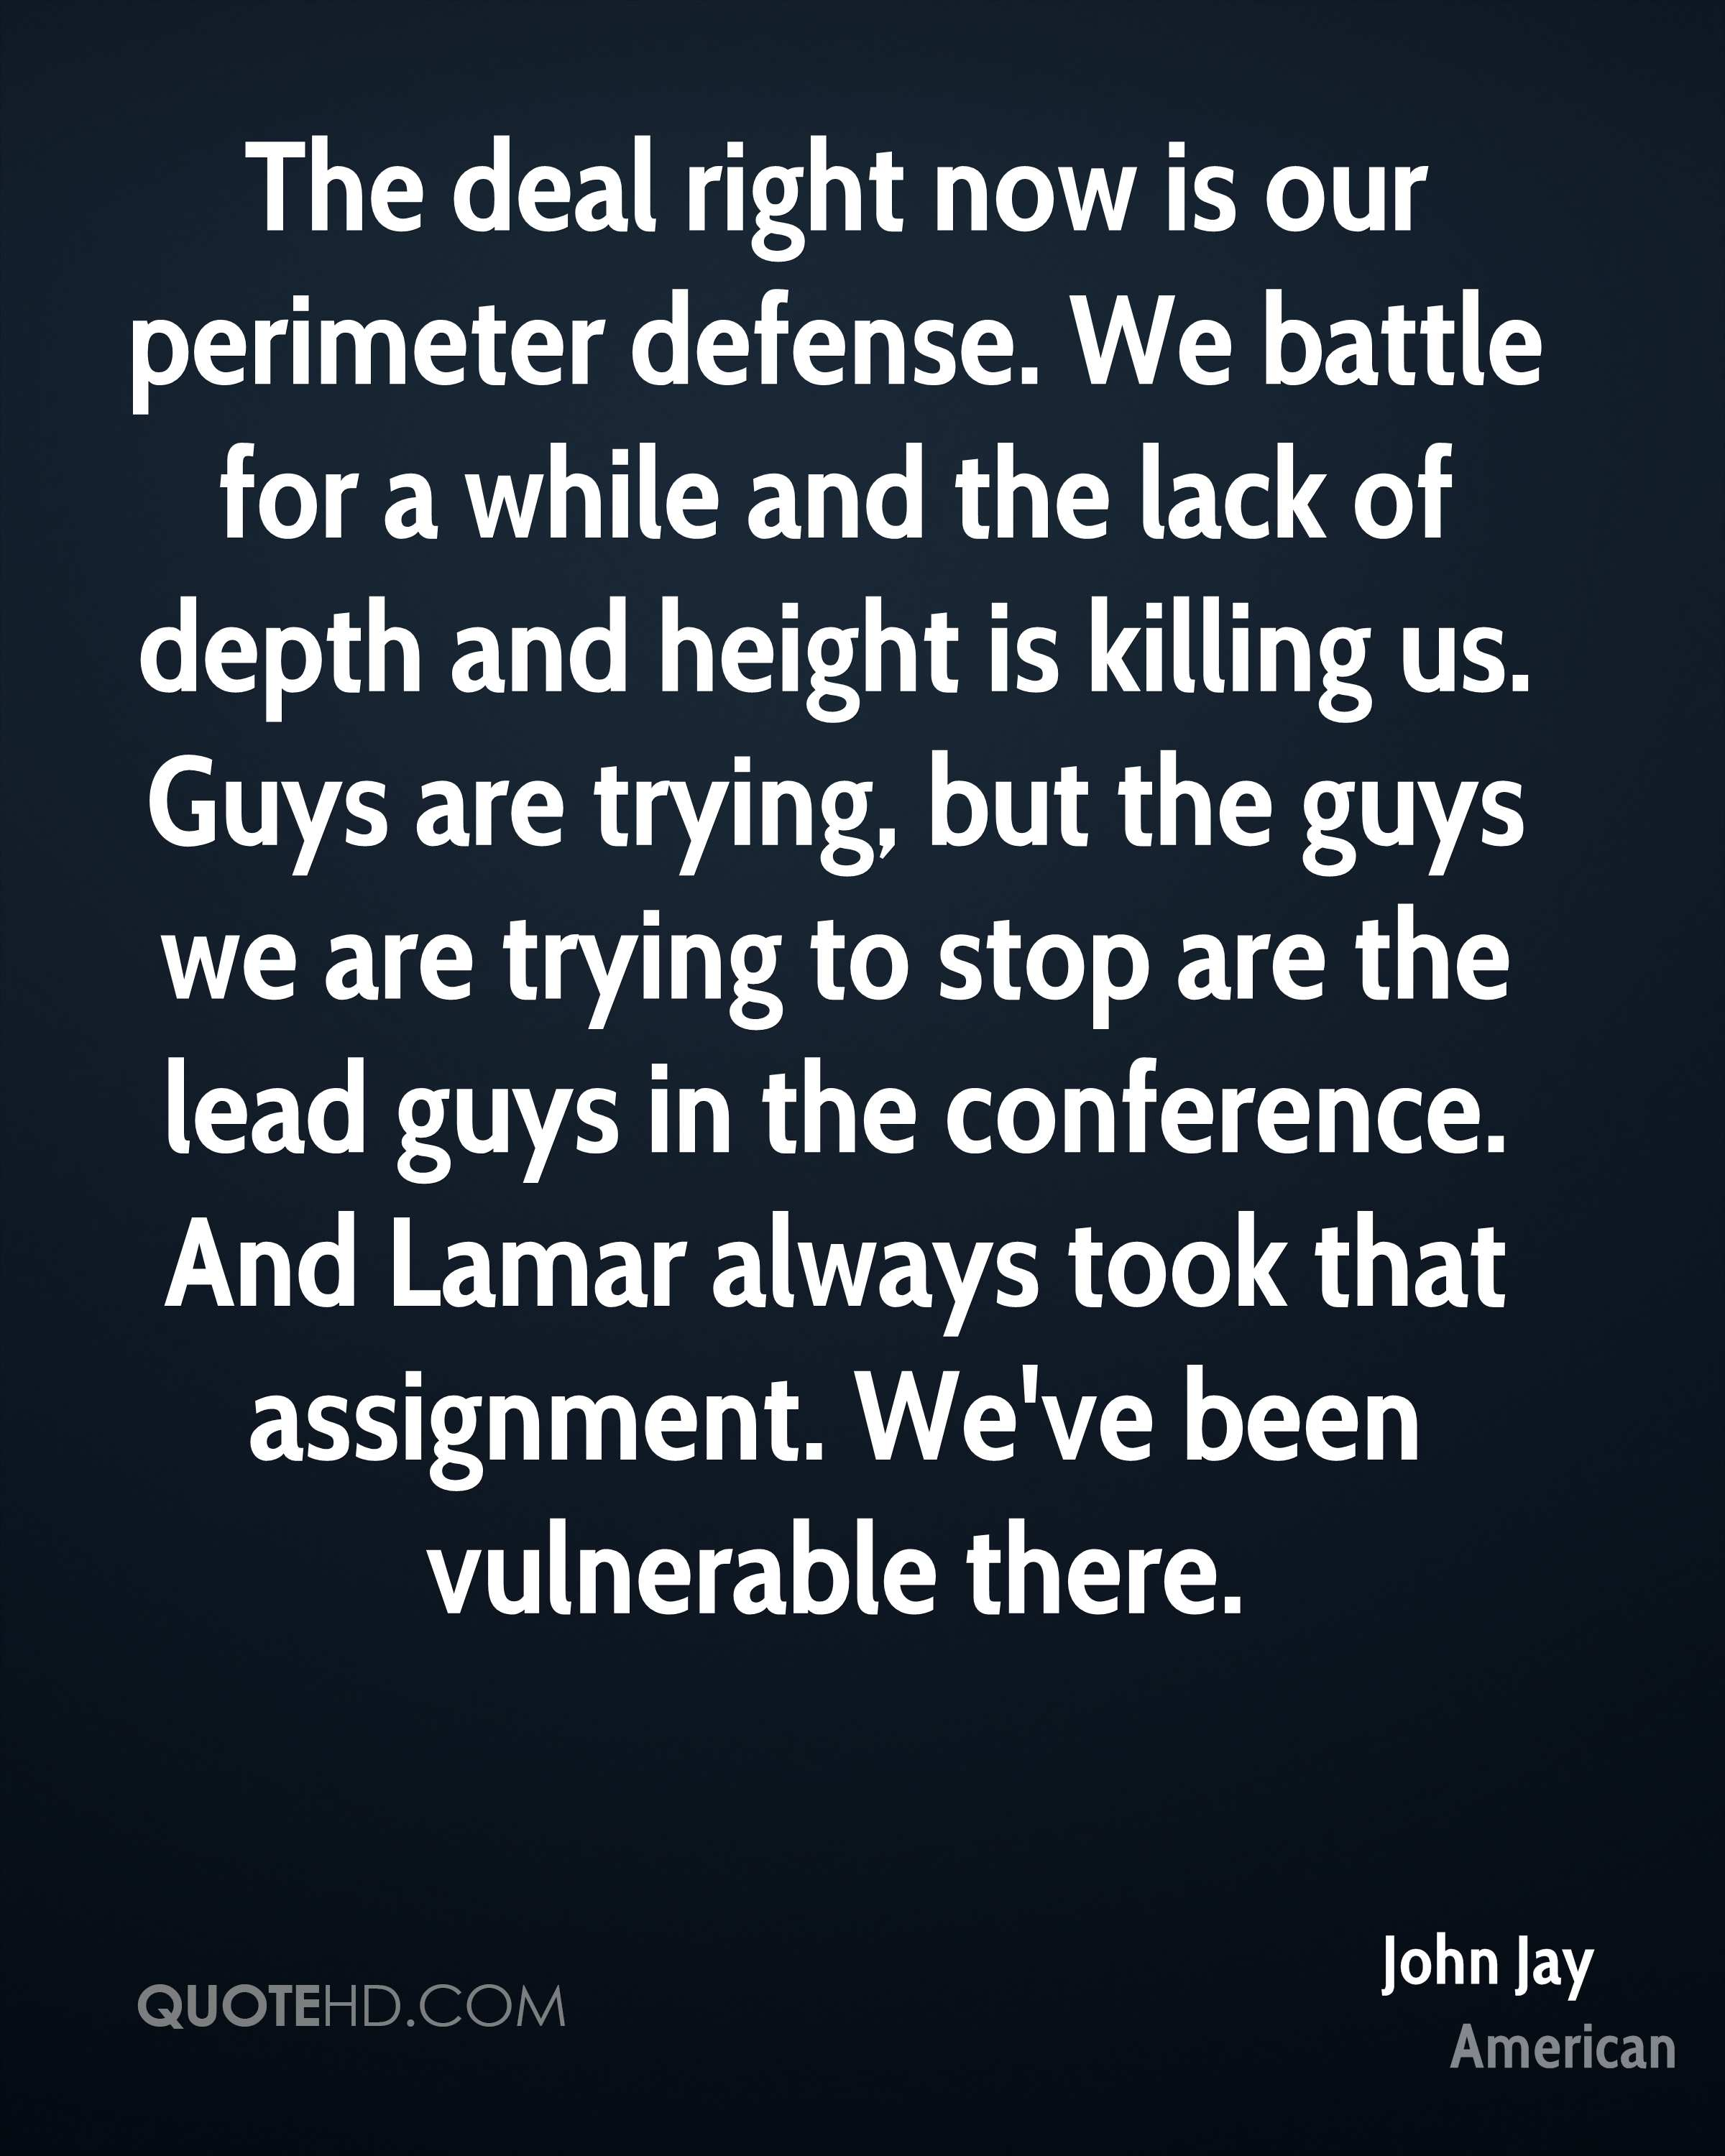 The deal right now is our perimeter defense. We battle for a while and the lack of depth and height is killing us. Guys are trying, but the guys we are trying to stop are the lead guys in the conference. And Lamar always took that assignment. We've been vulnerable there.